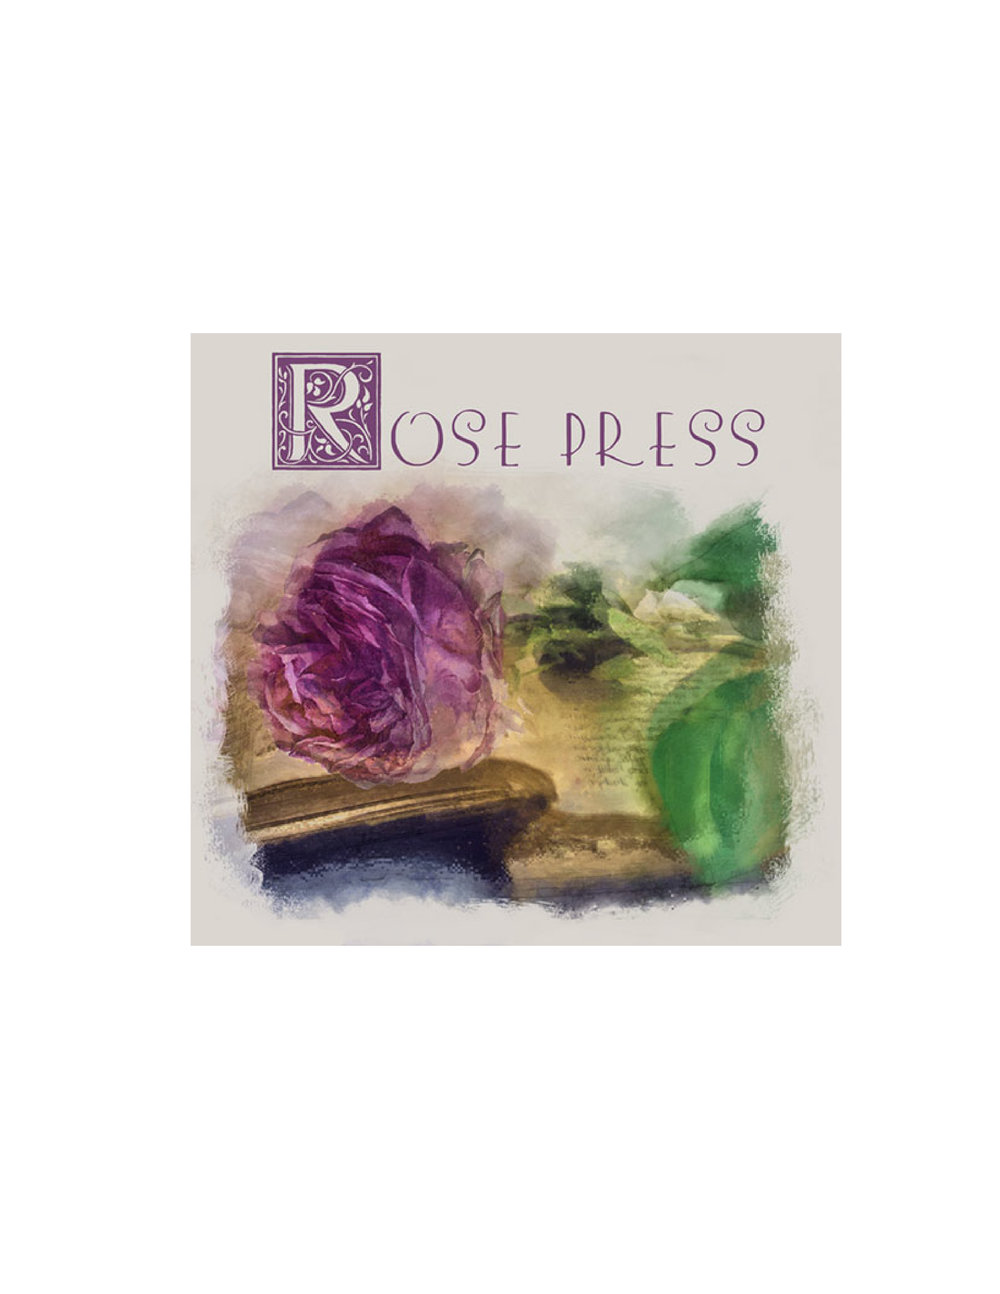 And do check out - ROSE PRESS ~ Books to bring you home to yourself. See the rest of the Rose Press collection